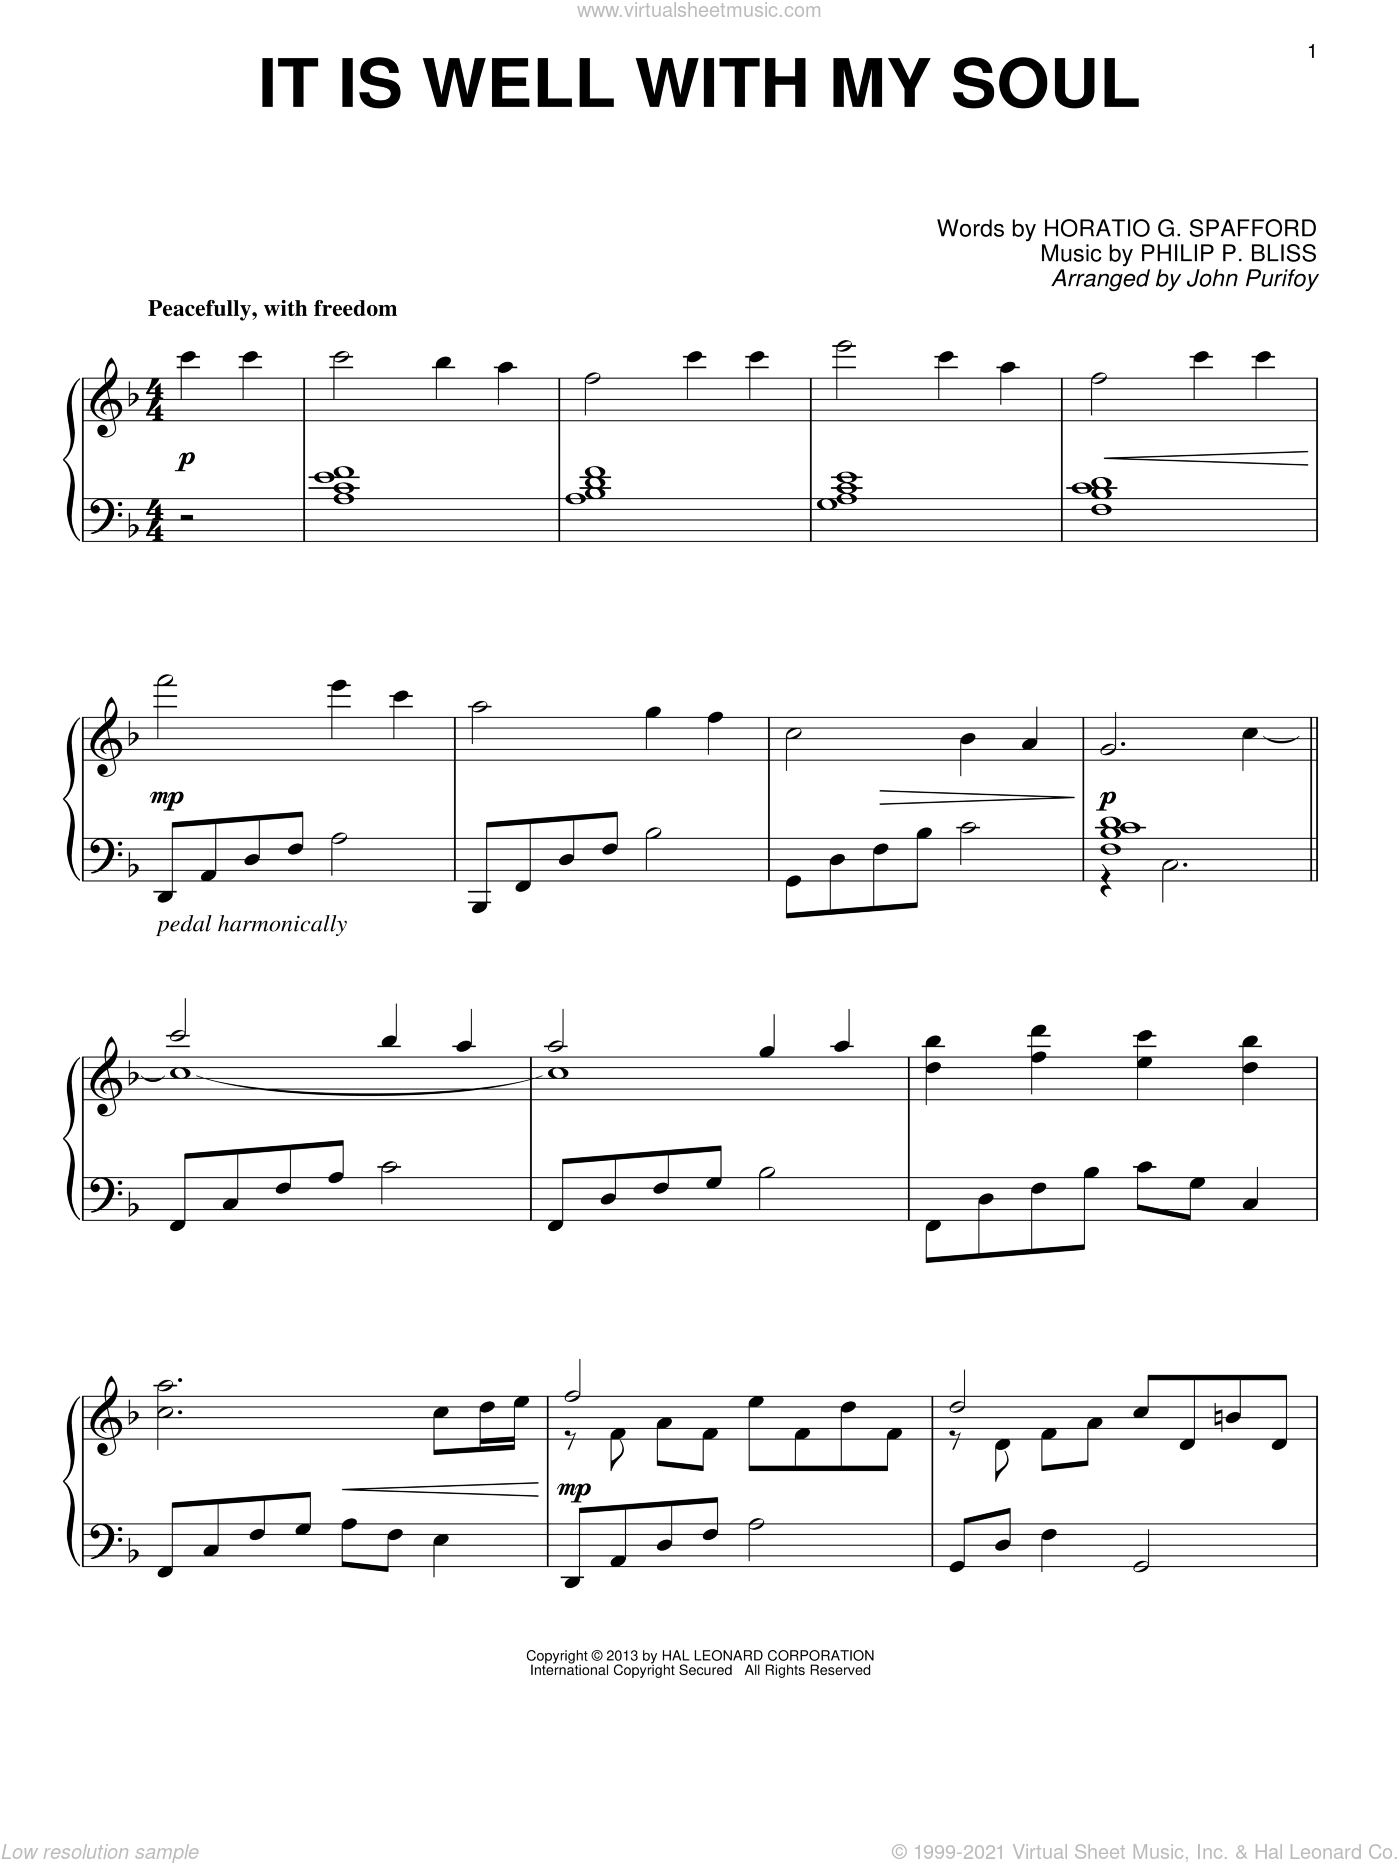 It Is Well With My Soul sheet music for piano solo by John Purifoy, Horatio G. Spafford and Philip P. Bliss, intermediate